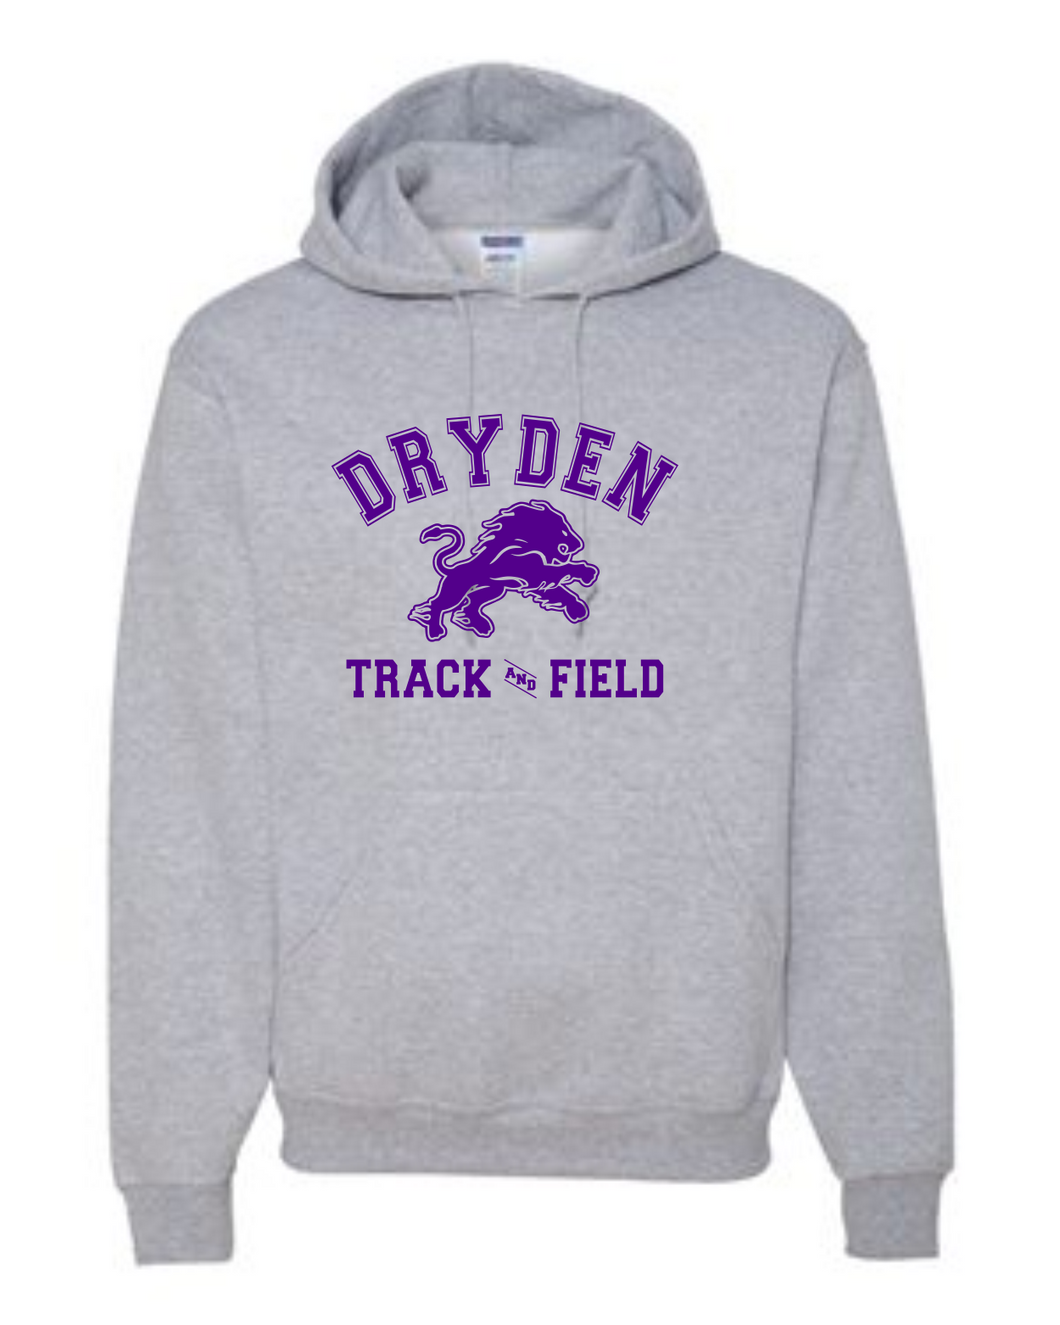 Grey Track and Field Hoodie